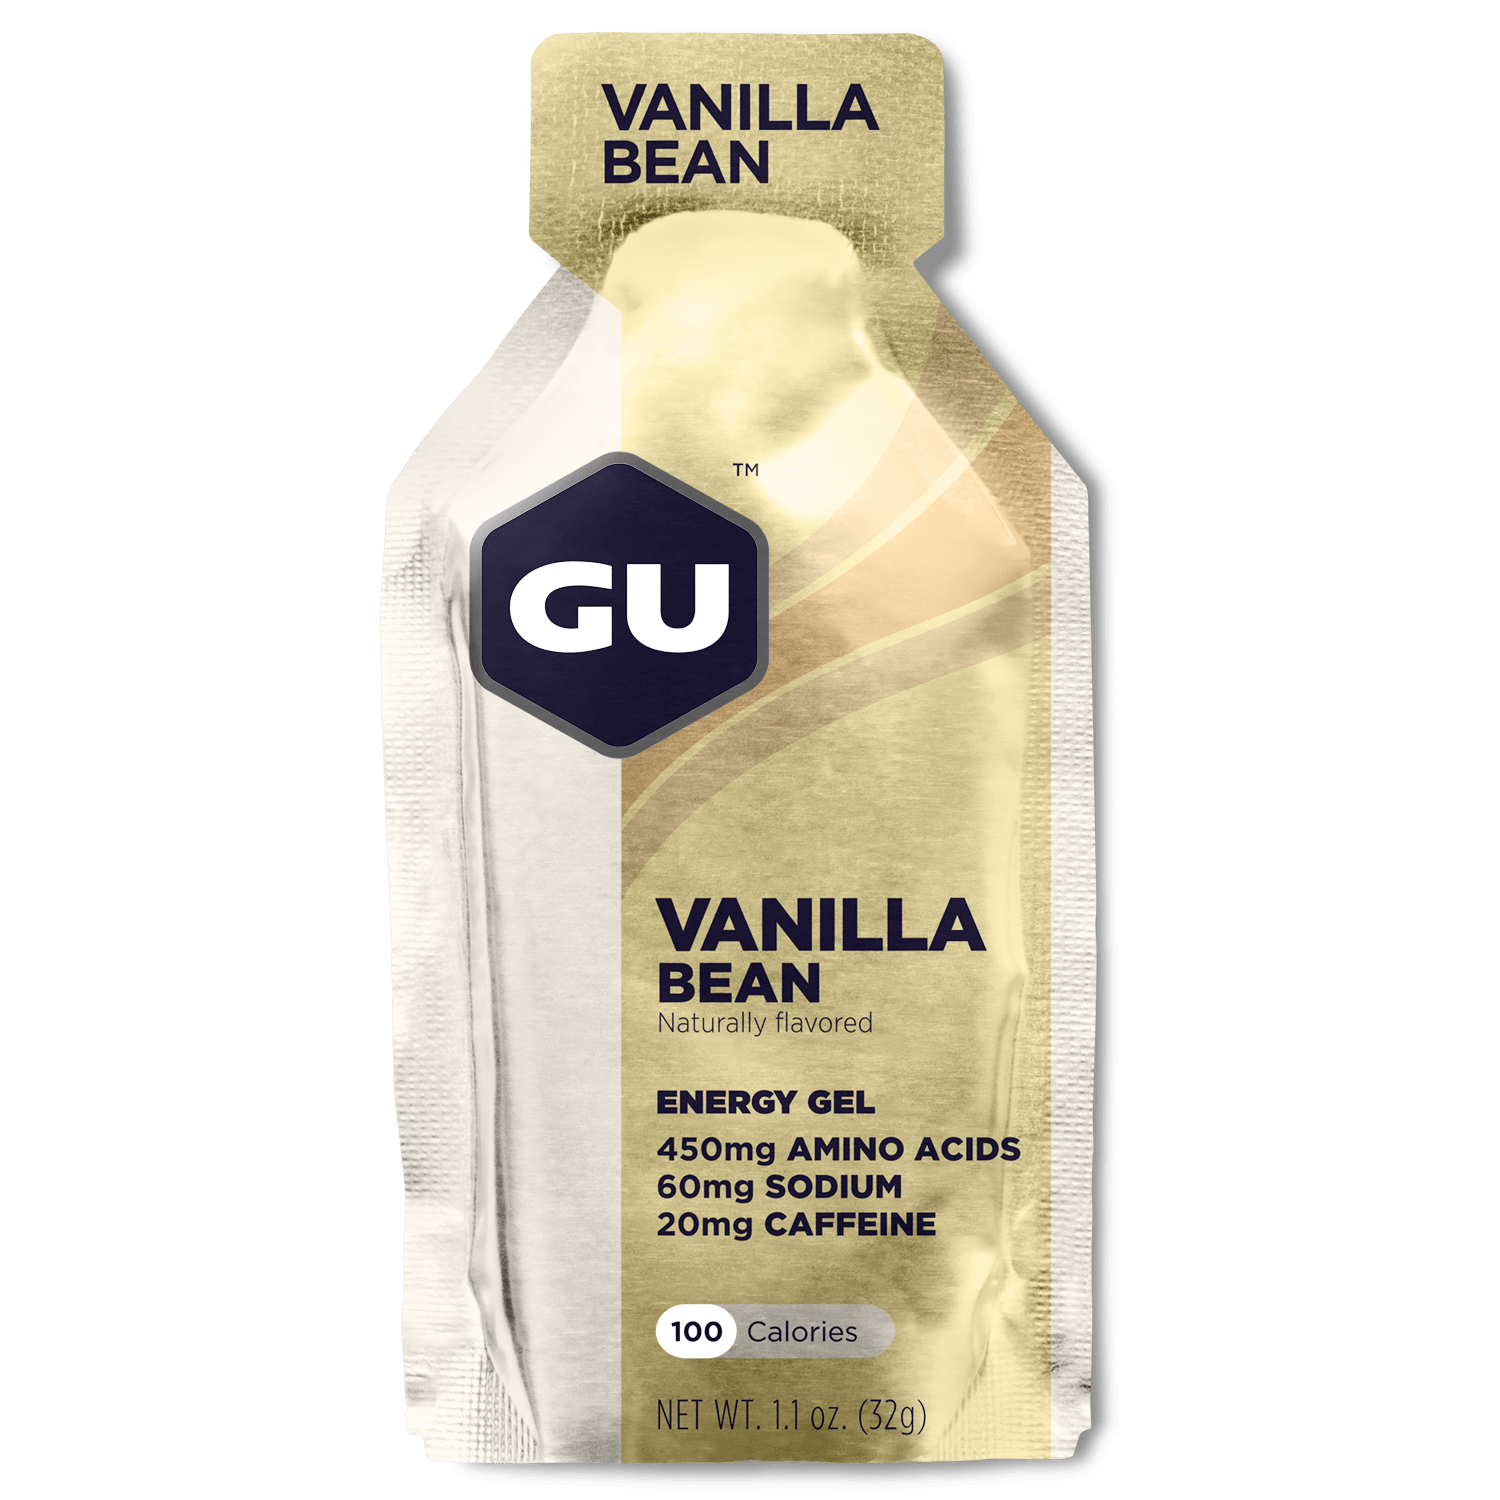 GU Sports Nutrition Vanilla Bean / 24 Count Box GU Original Sports Nutrition Energy Gel - Various Flavors